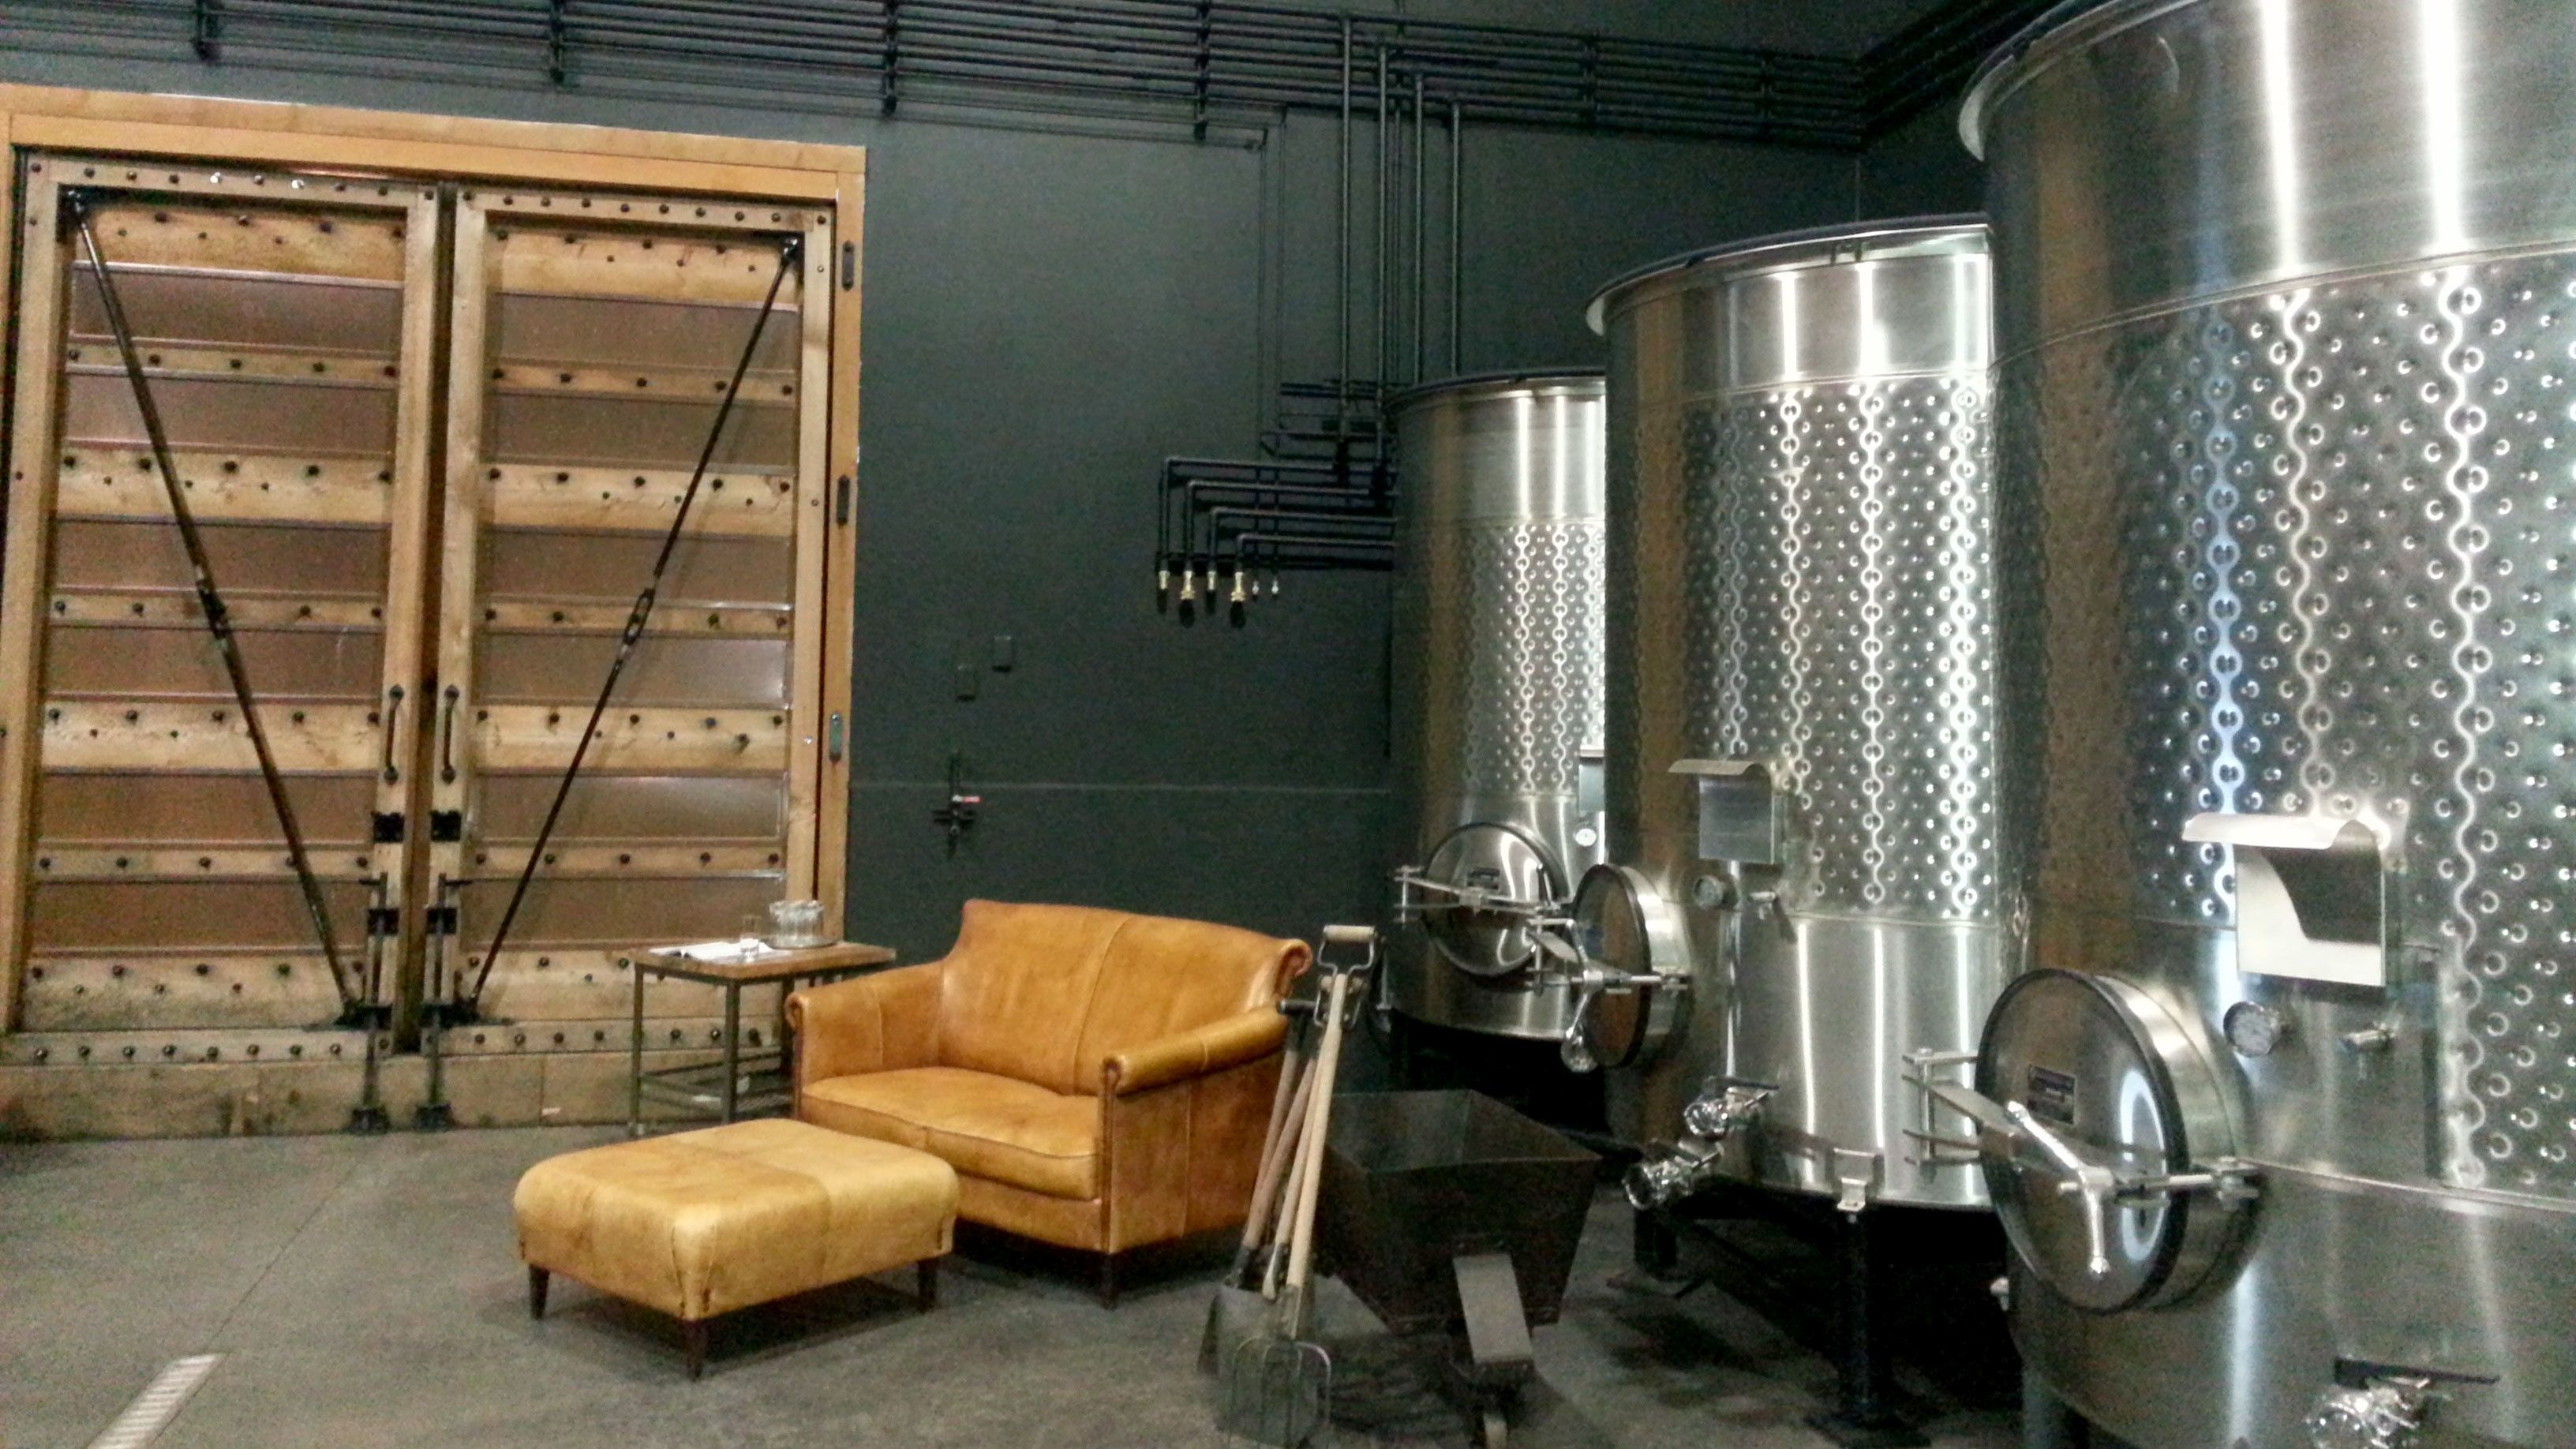 Large vats and seating inside a winery in Portland